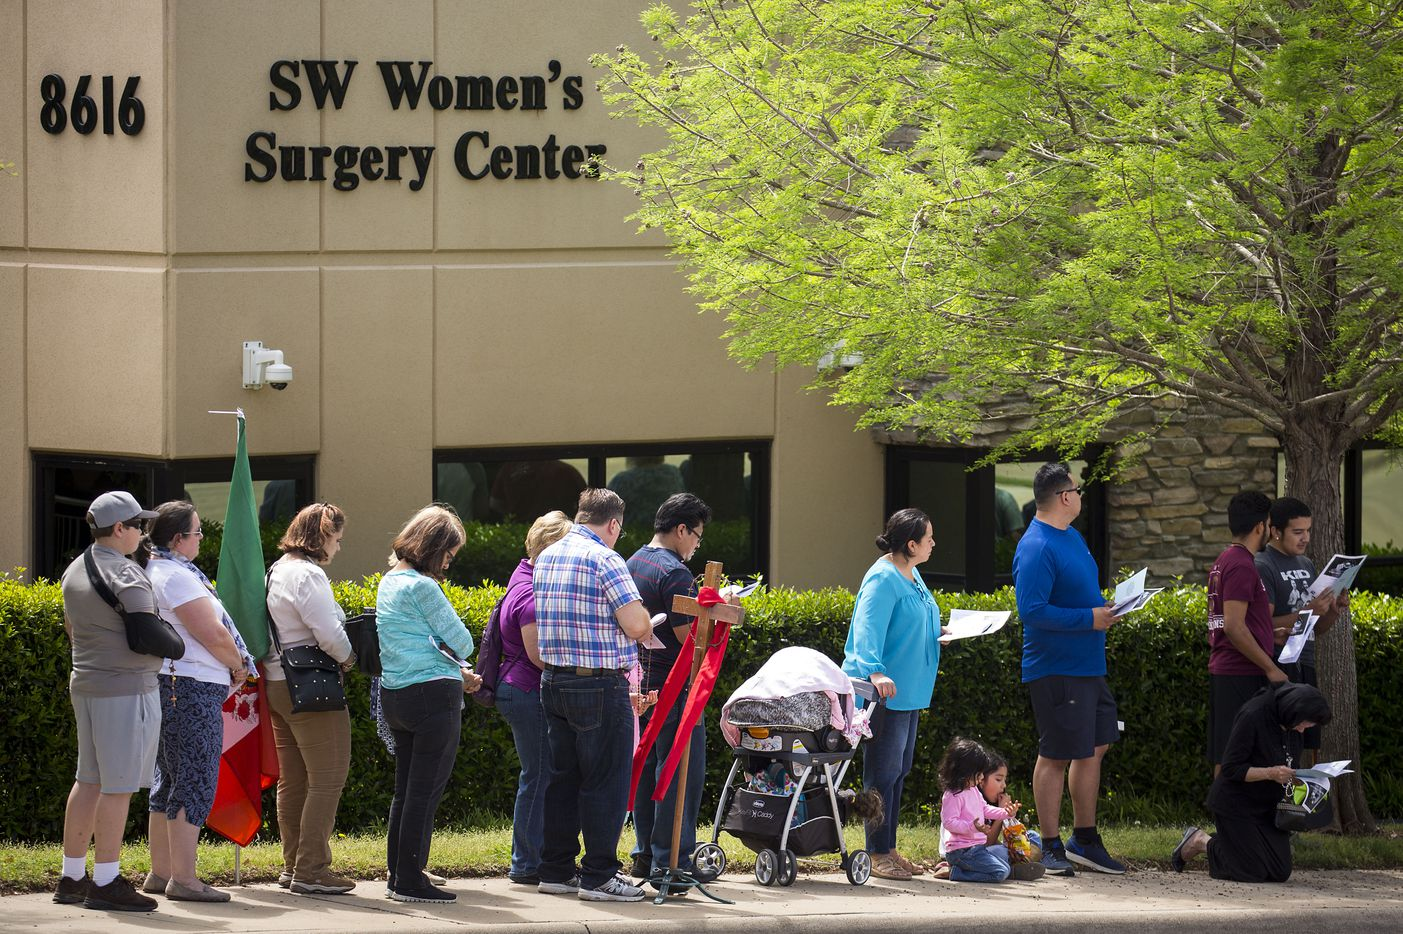 Abortion opponents line Greenville Avenue in prayer during a Good Friday vigil outside the Southwestern Women's Surgery Center on Friday, April 14, 2017, in Dallas.